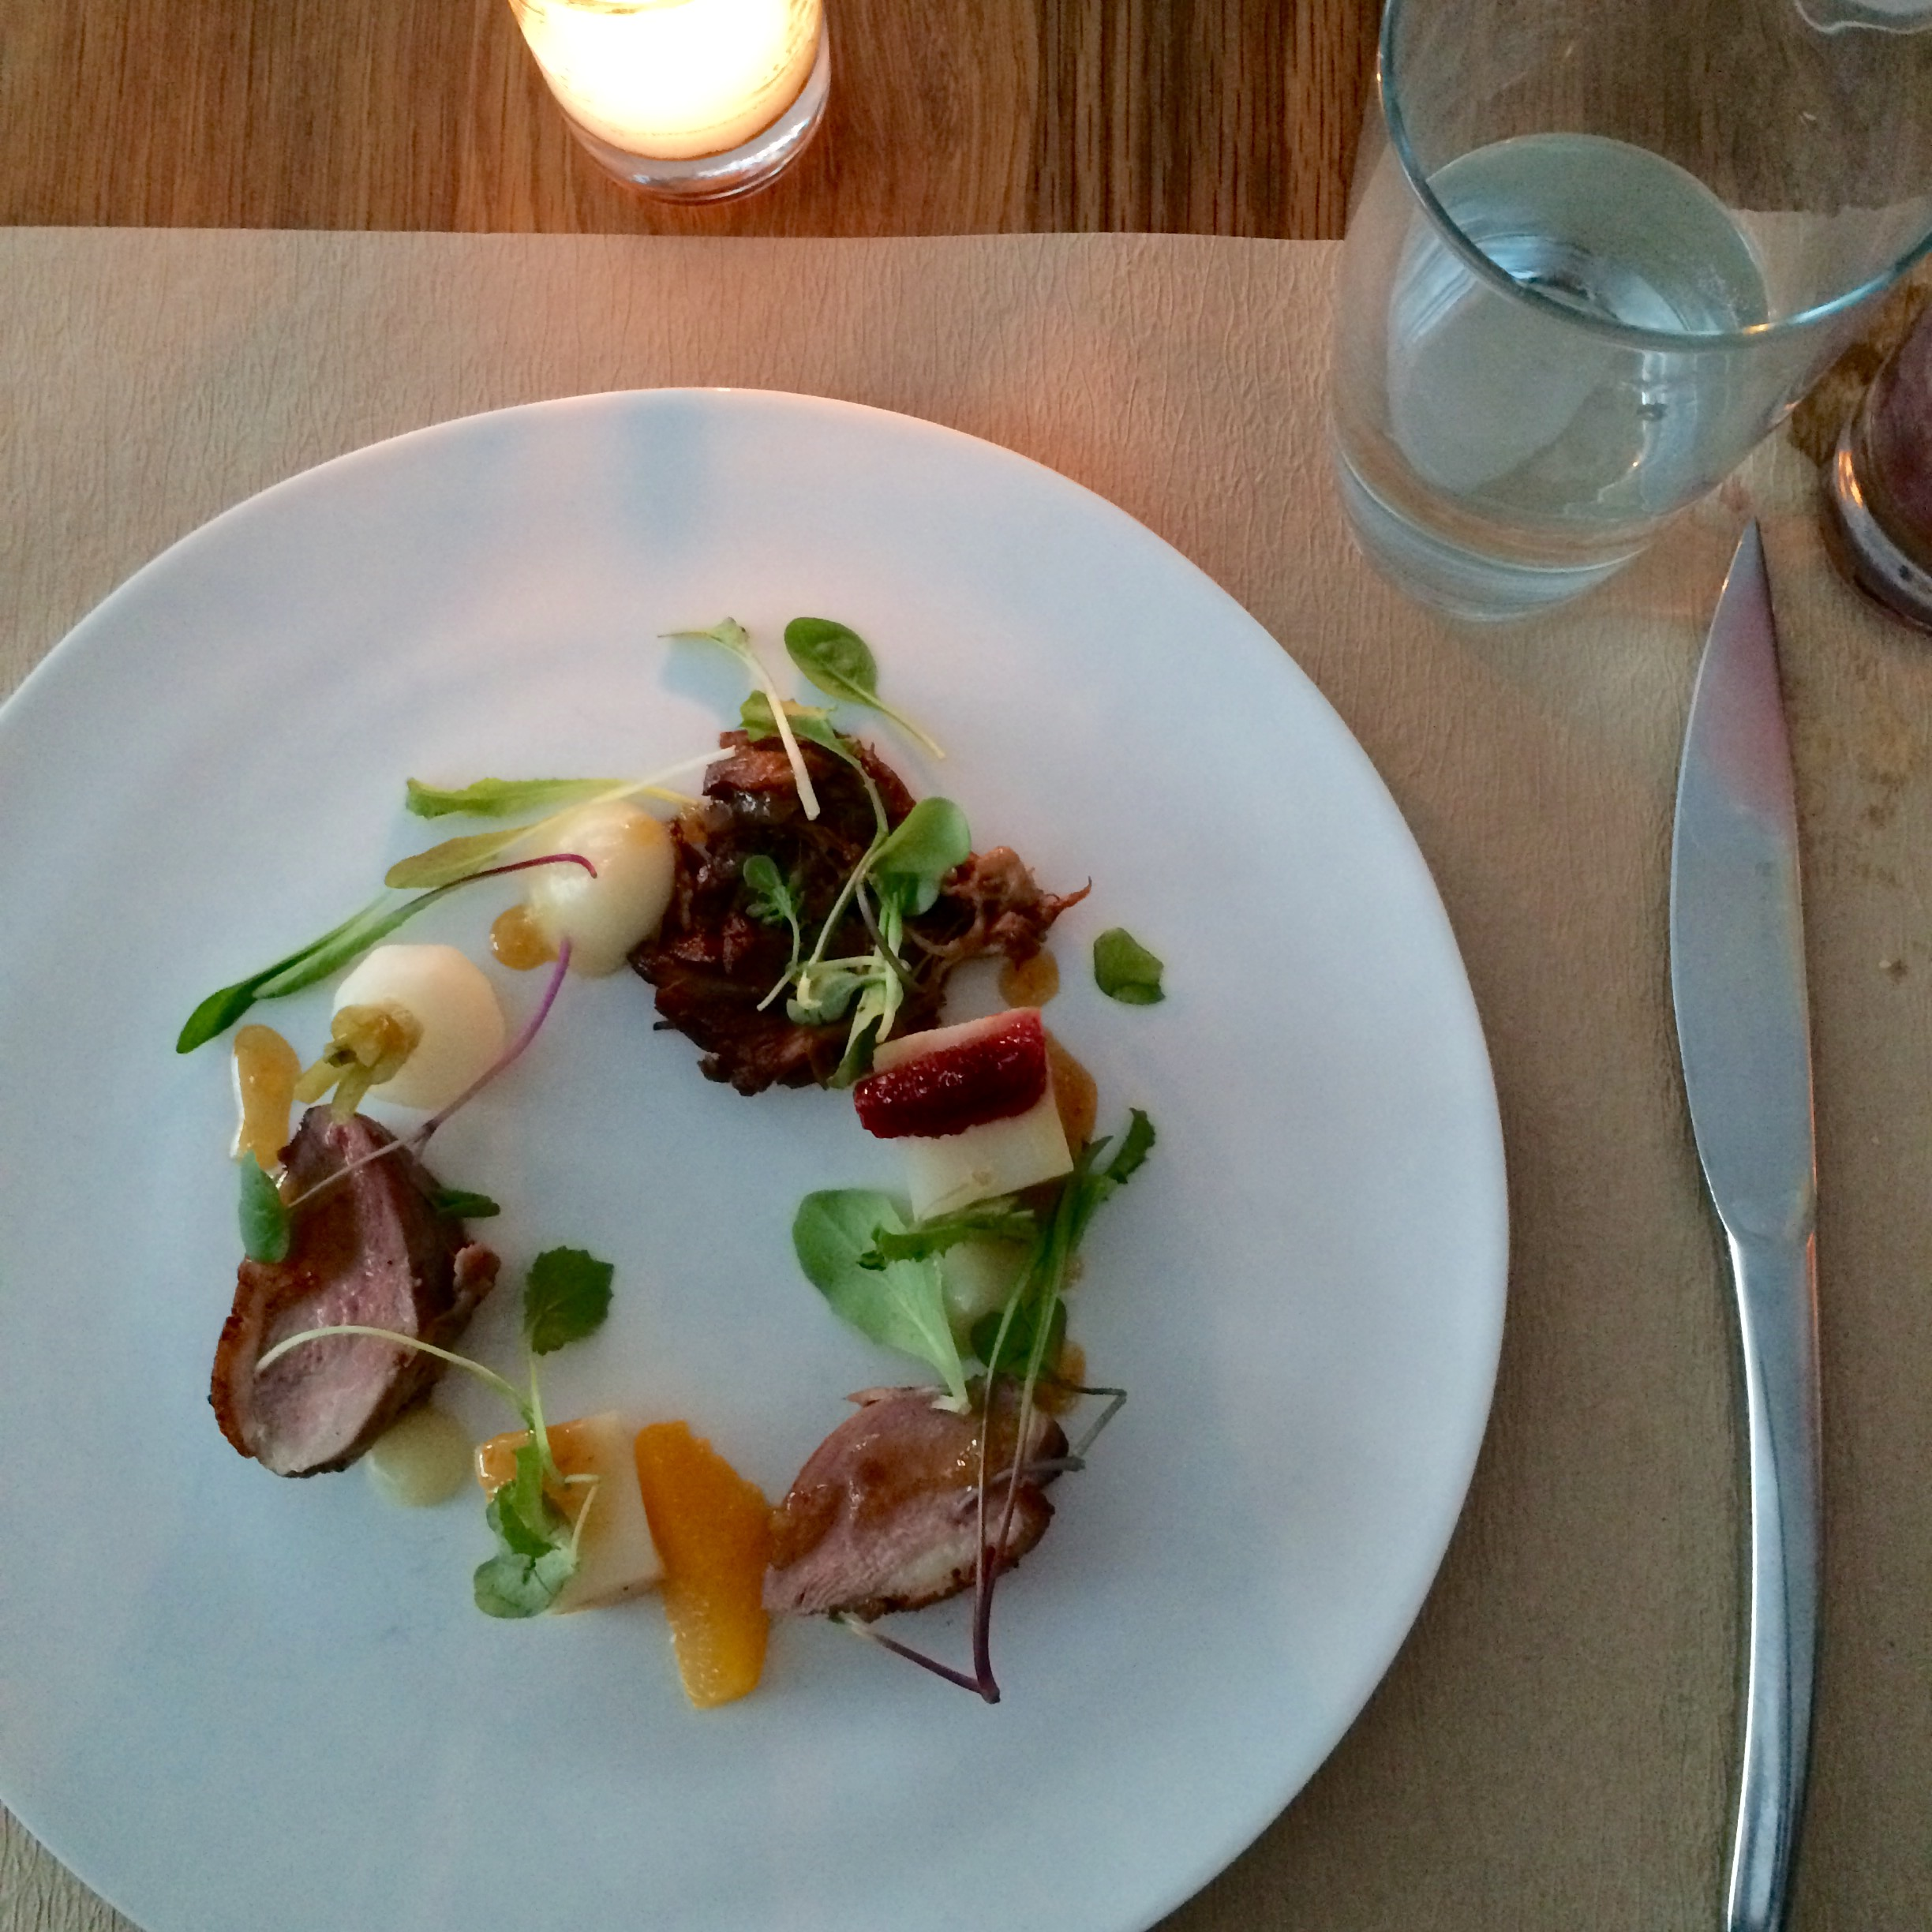 Roasted crescent duck with turnips, celeriac, citrus, and a ginger-chilli sauce